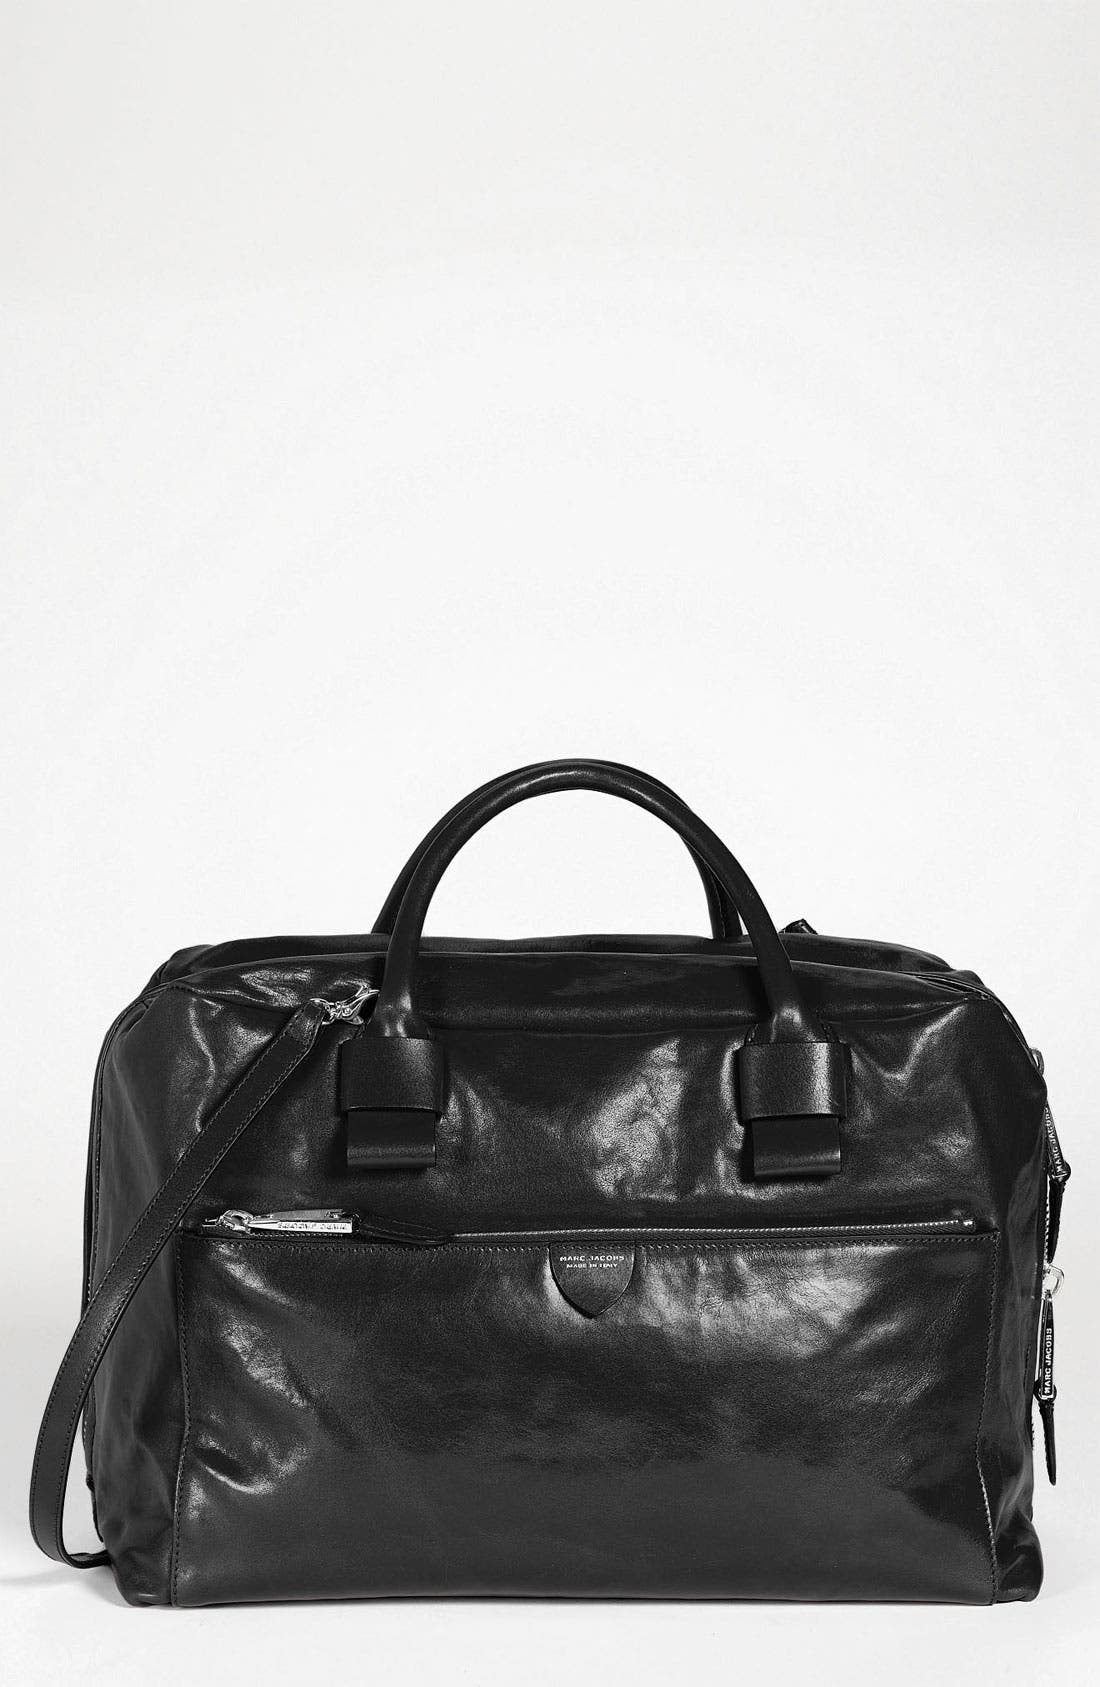 Main Image - MARC JACOBS 'Antonia'  Leather Satchel